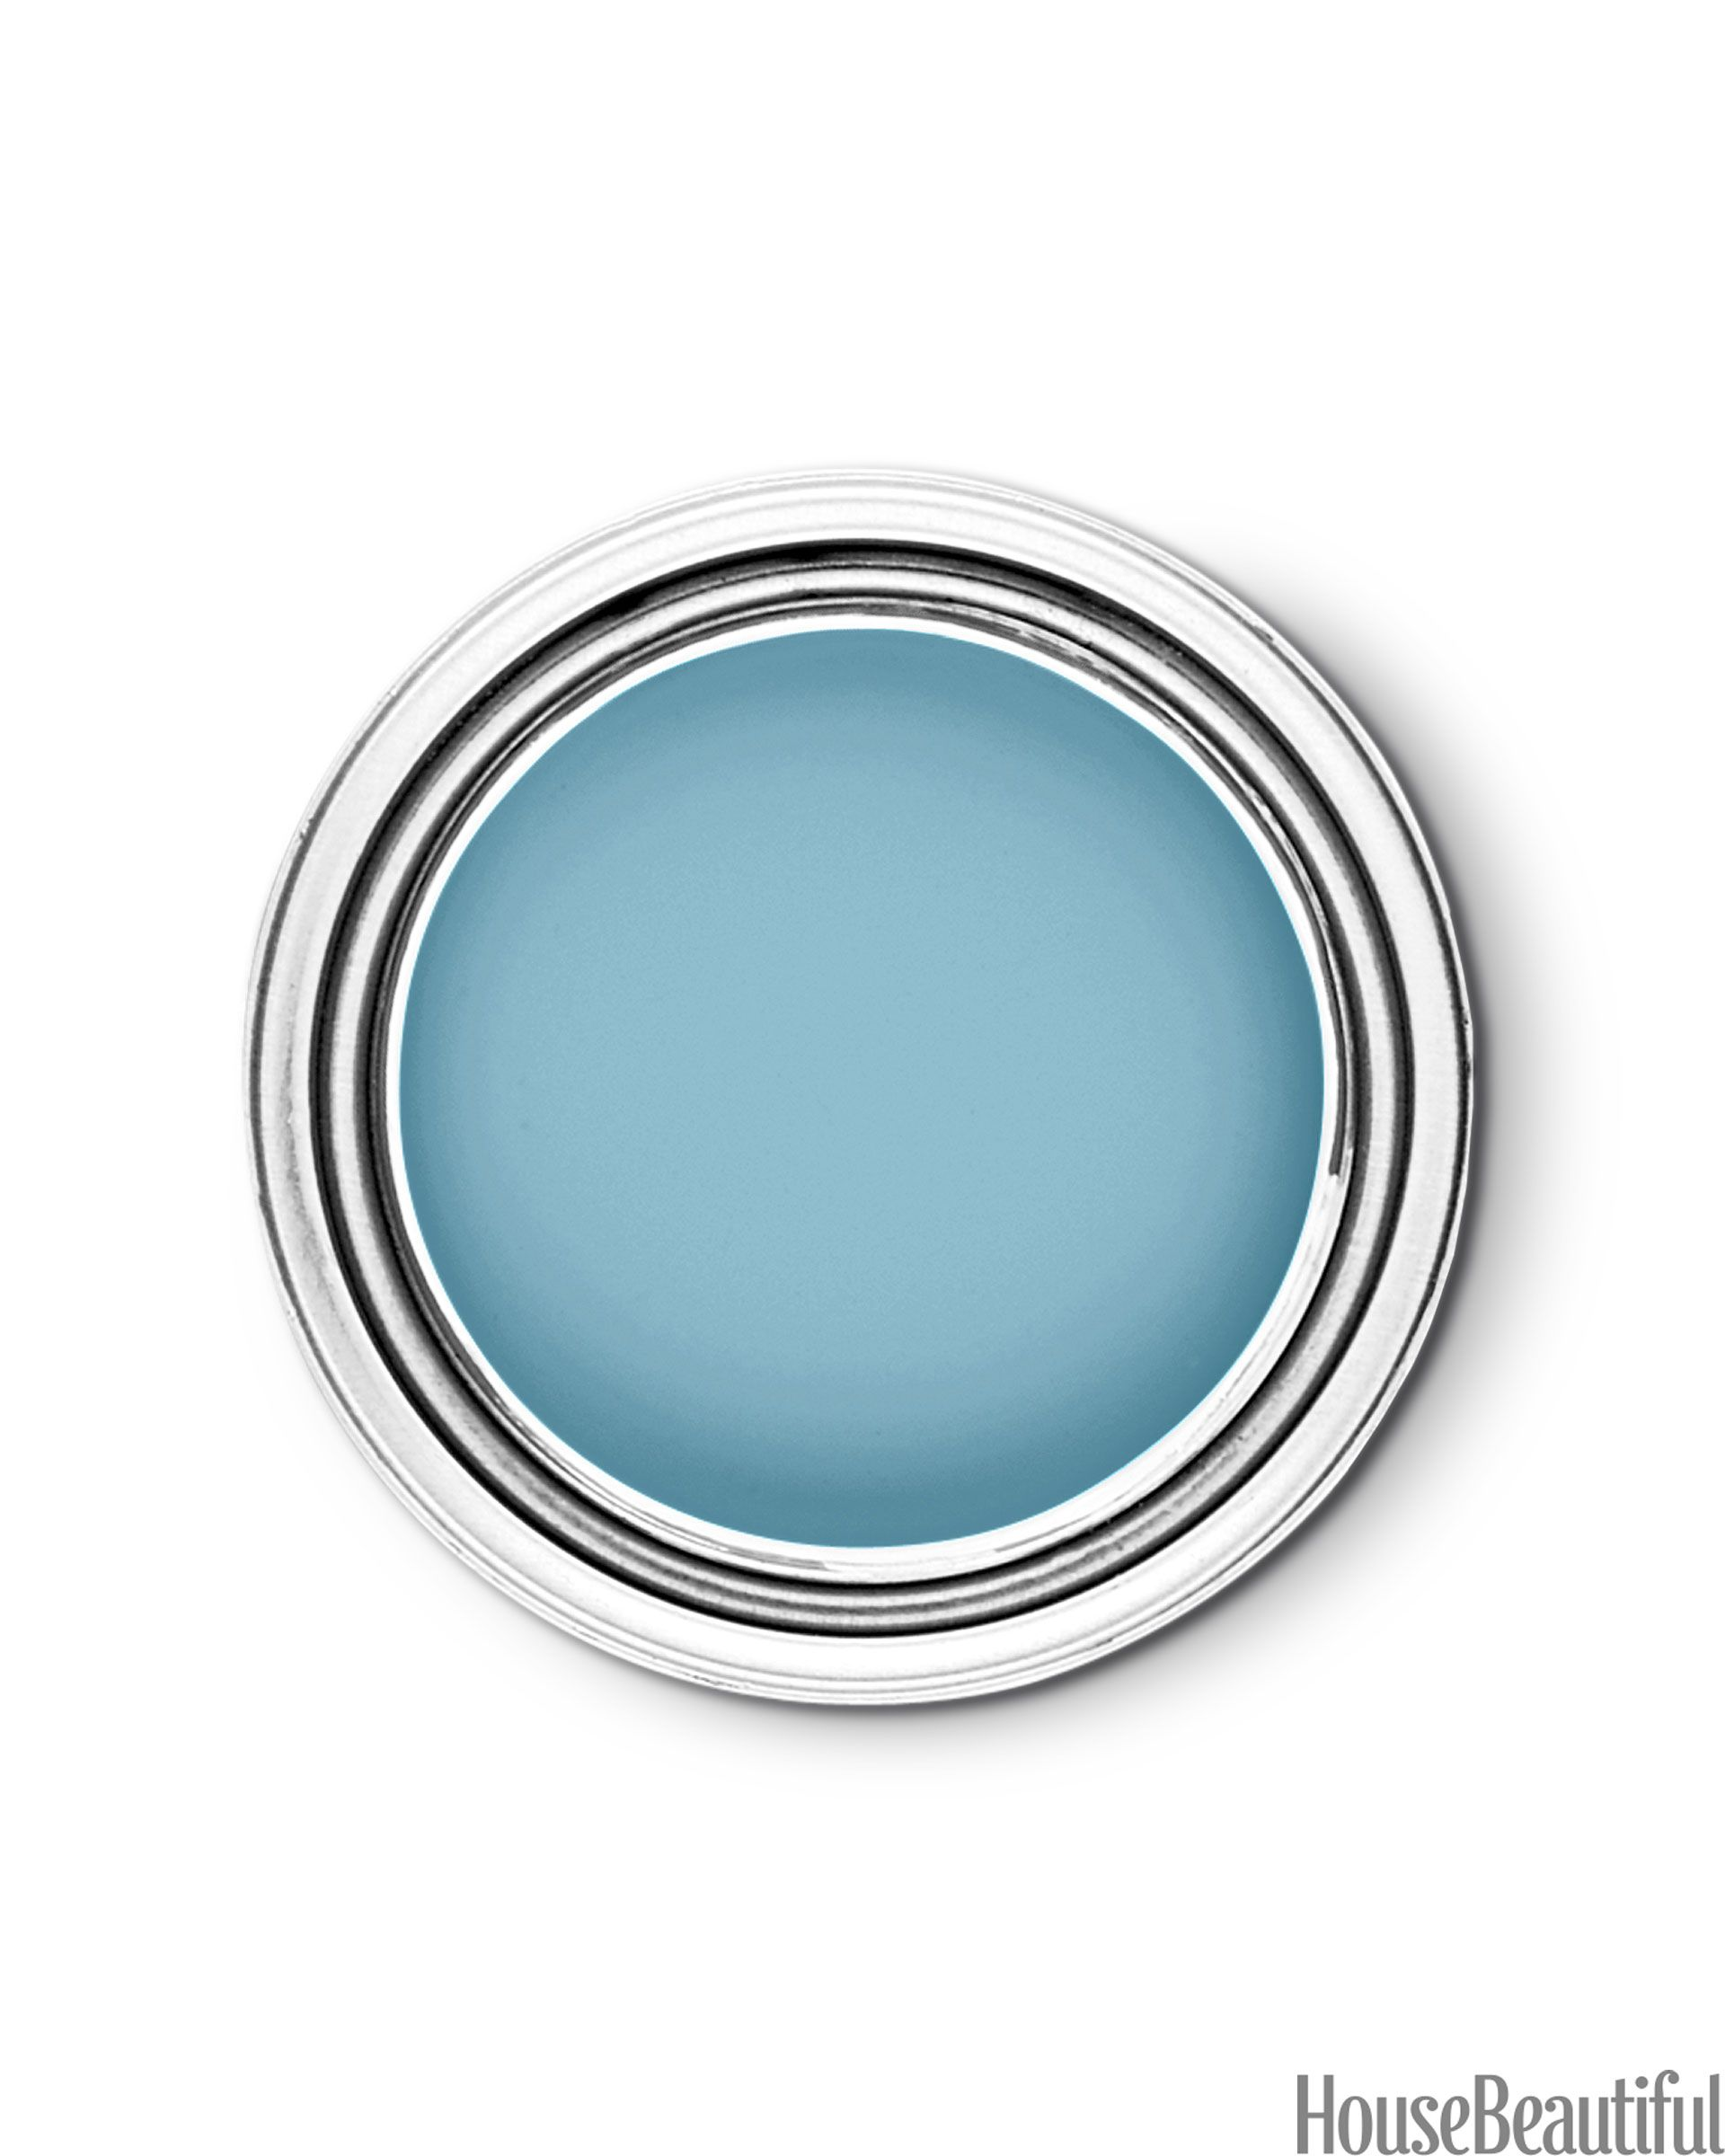 Behr Tropical Tide 520D-5, a beautiful turquoise blue that makes you feel as if you're in a warm, sunny place.